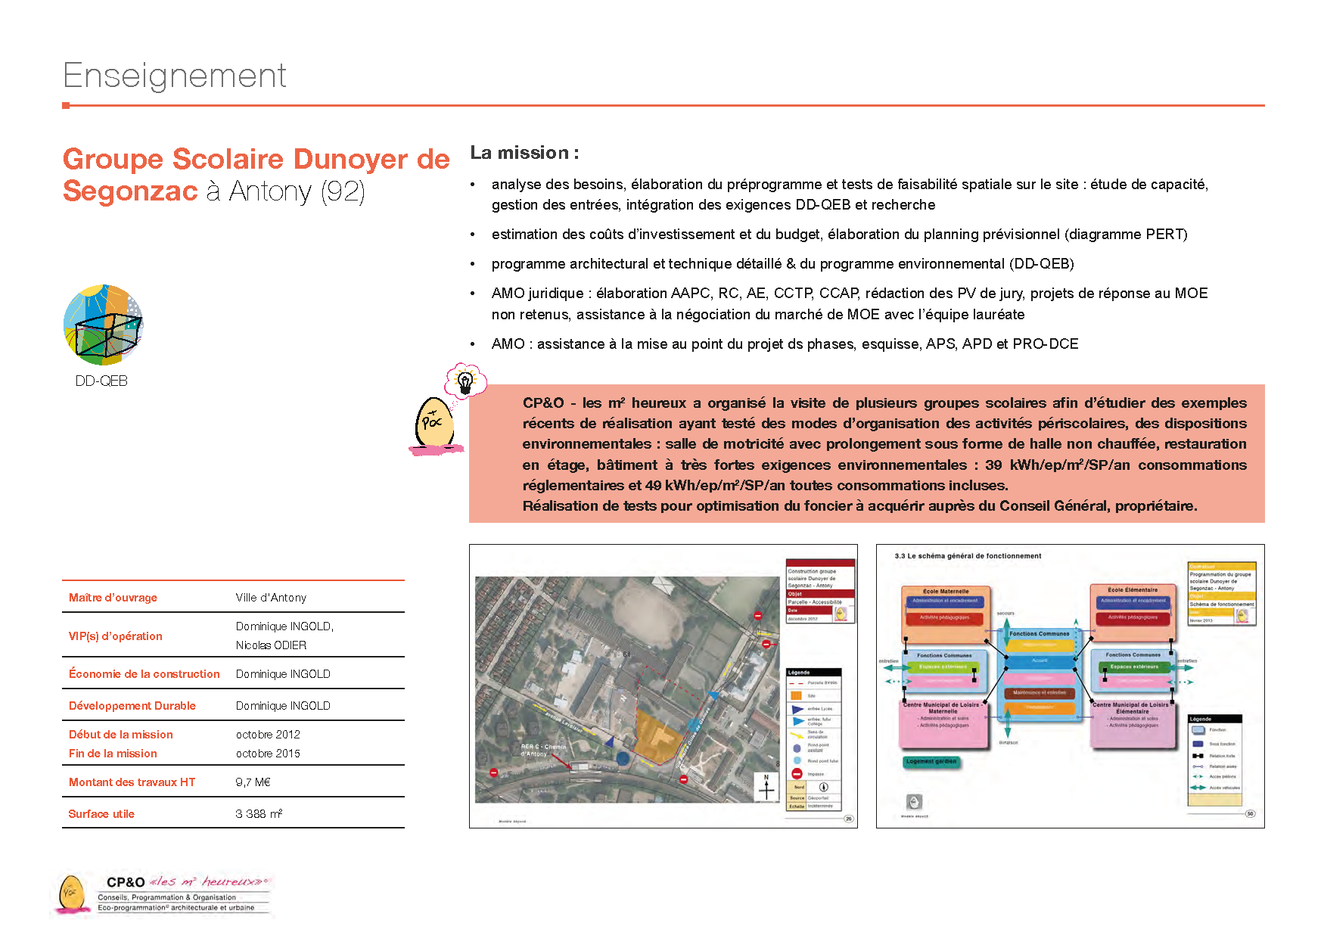 enseignement_Page_27.png